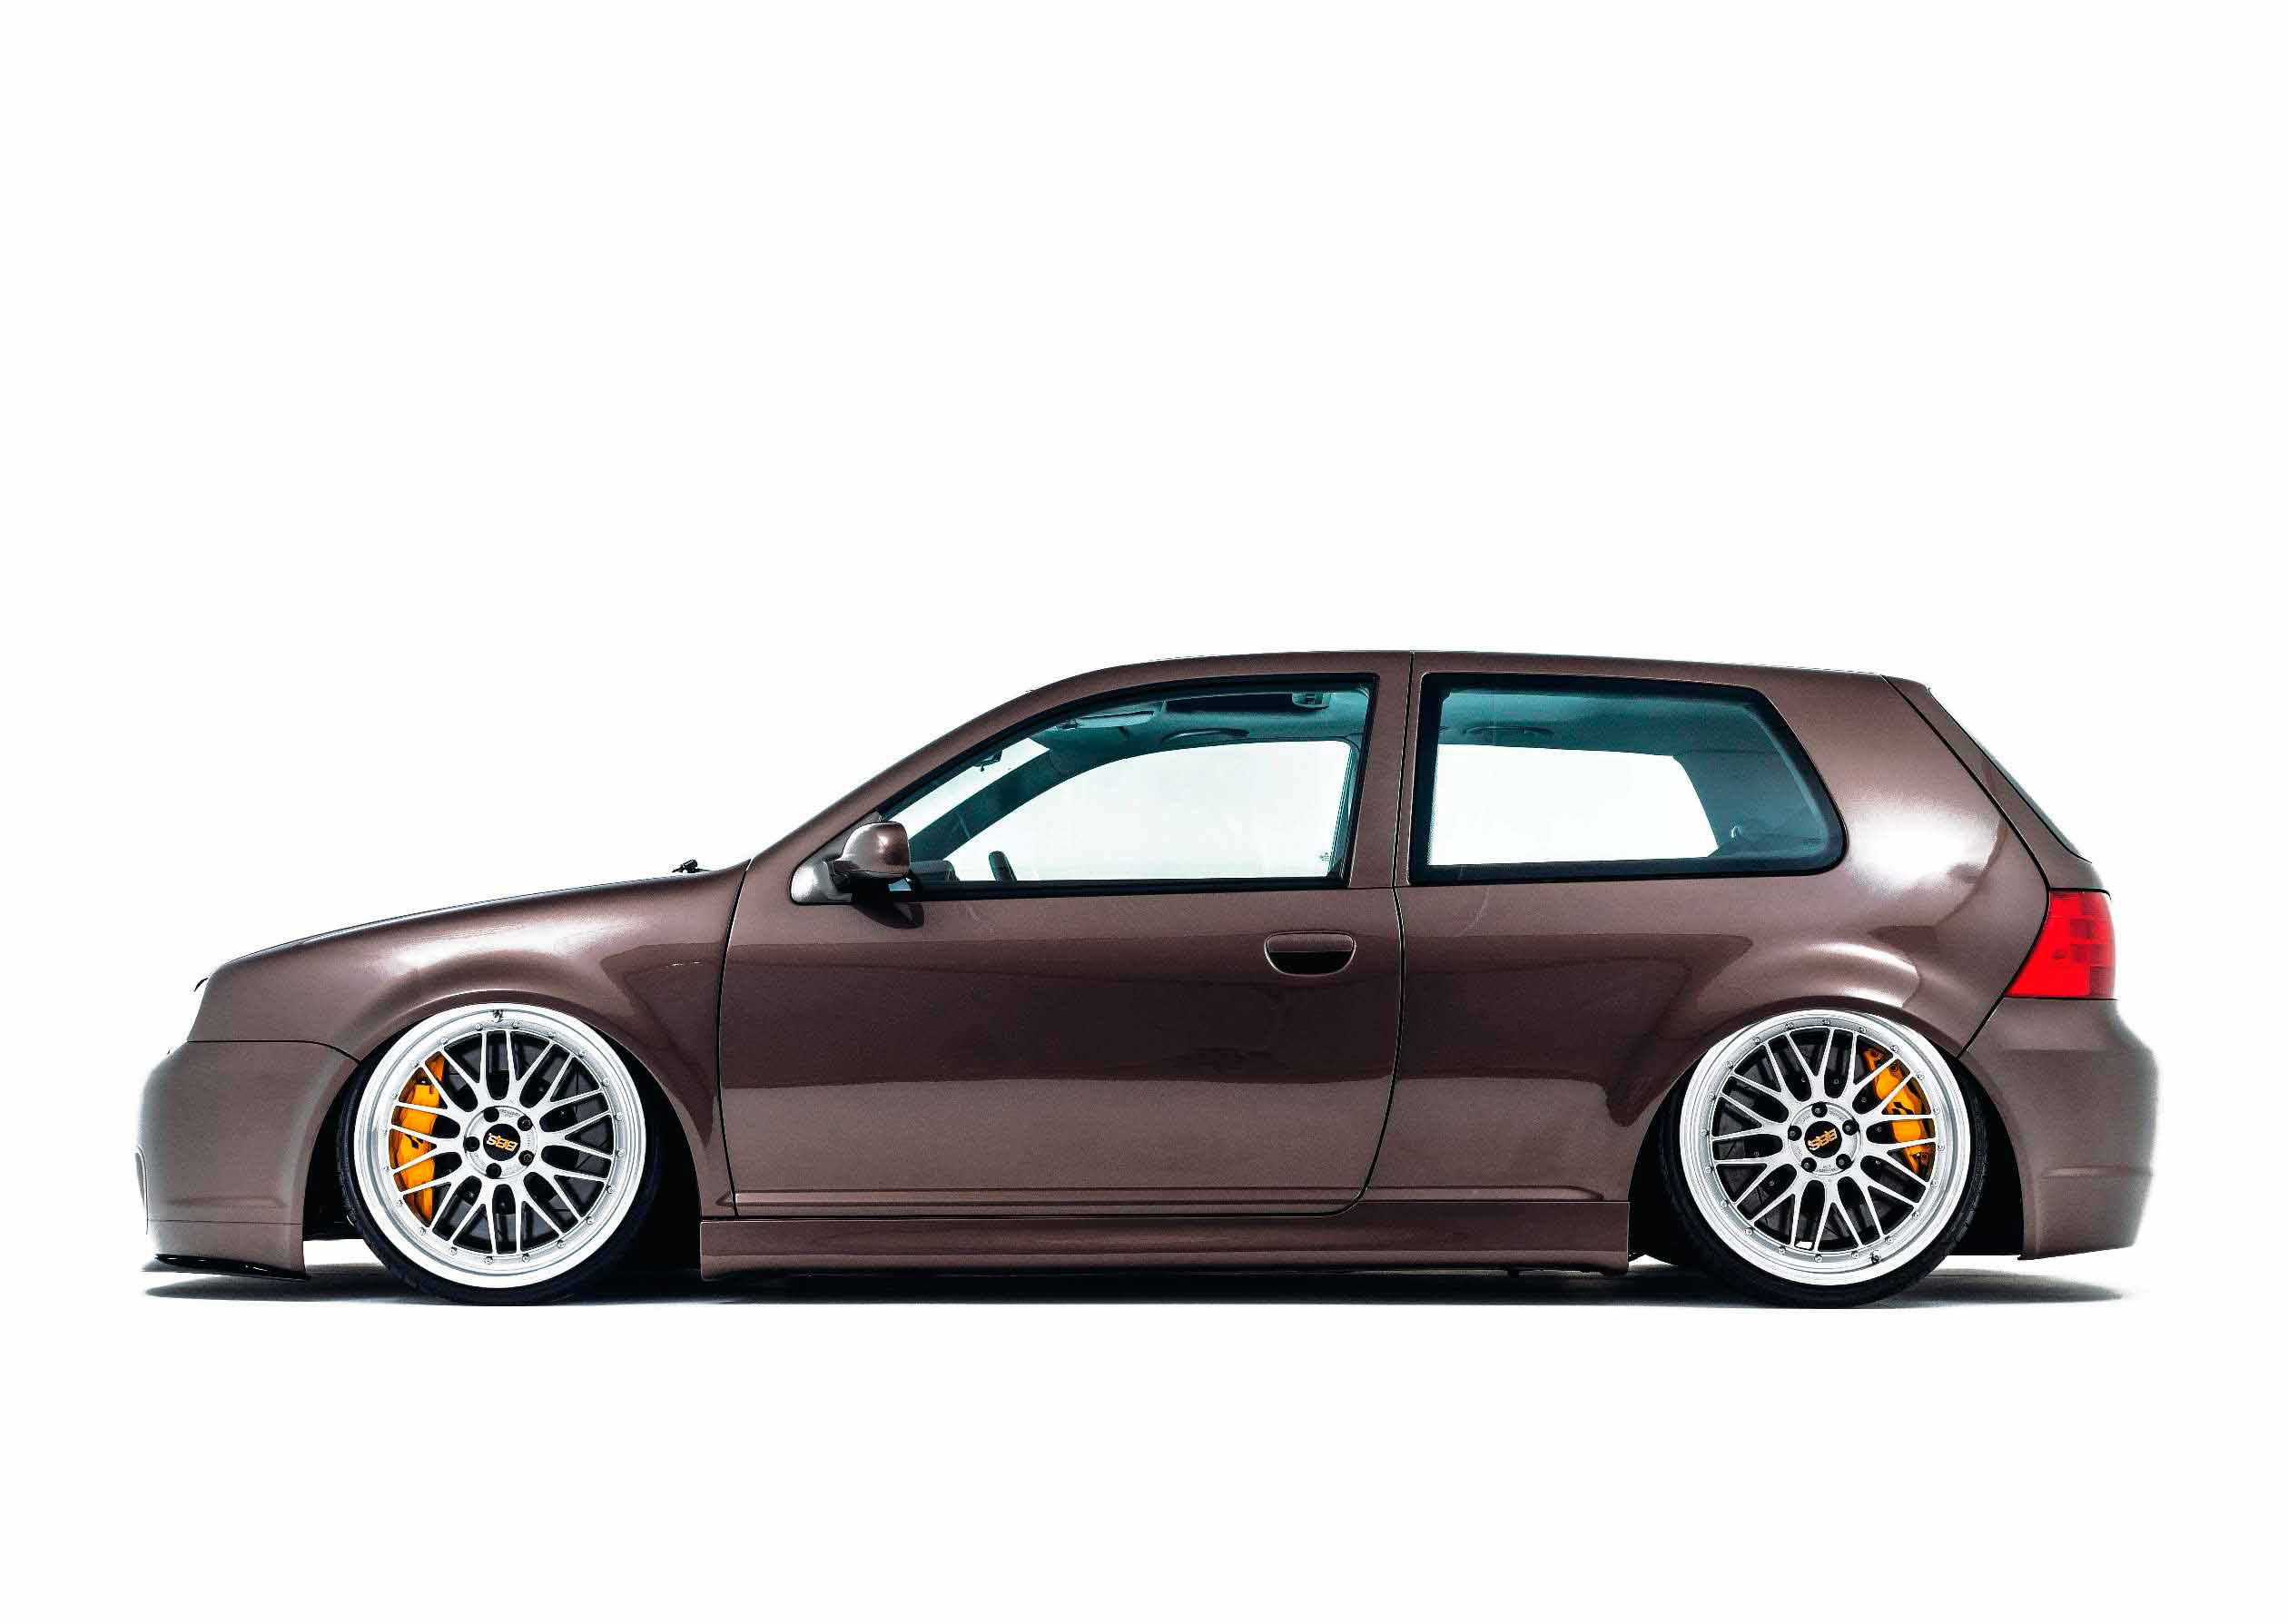 golf 4 with r8 audi rims - wiring diagram tags suck-call -  suck-call.discoveriran.it  discoveriran.it